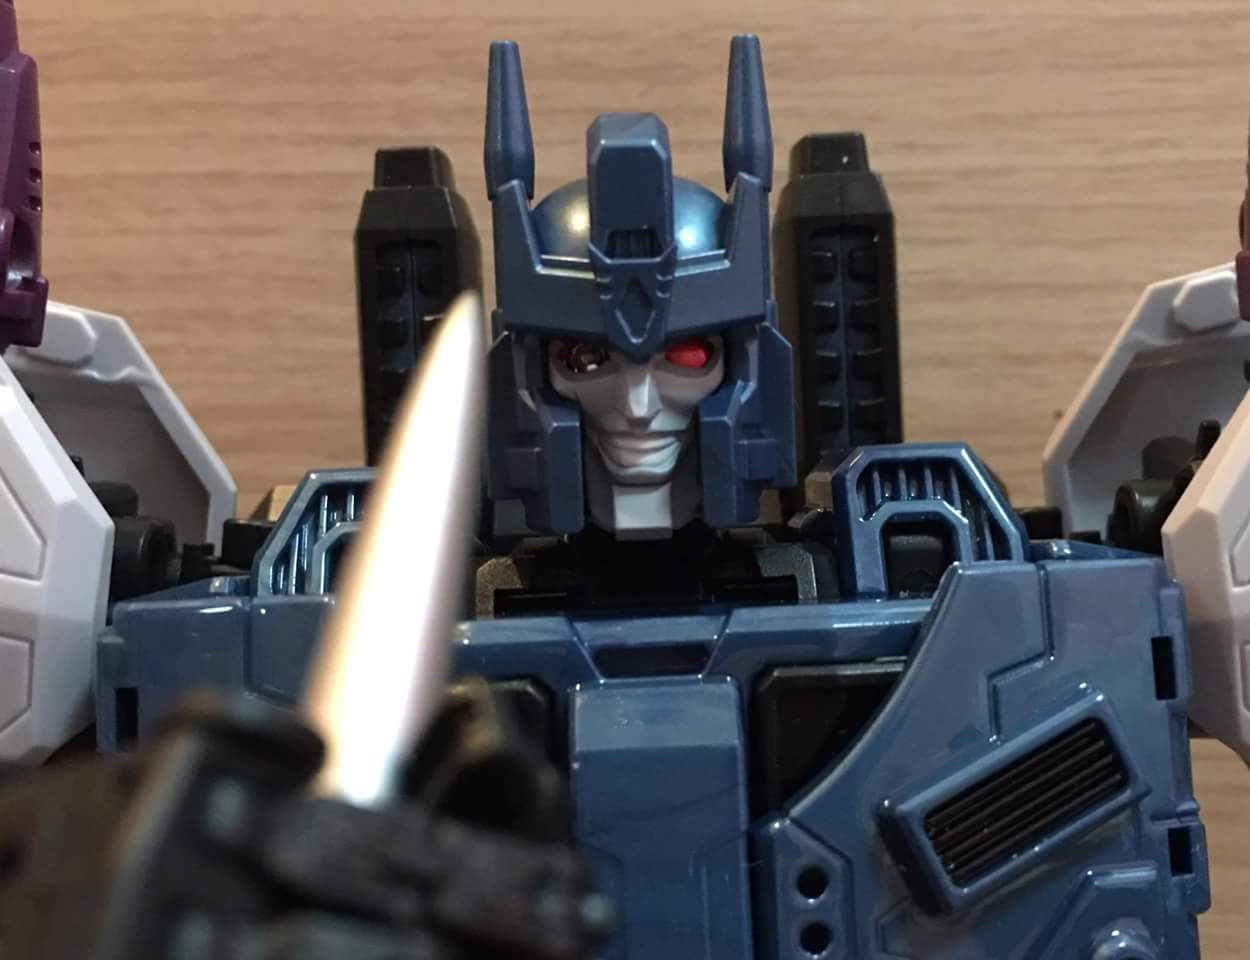 [Mastermind Creations] Produit Tiers - R-17 Carnifex - aka Overlord (TF Masterforce) - Page 3 Mbv5XaWF